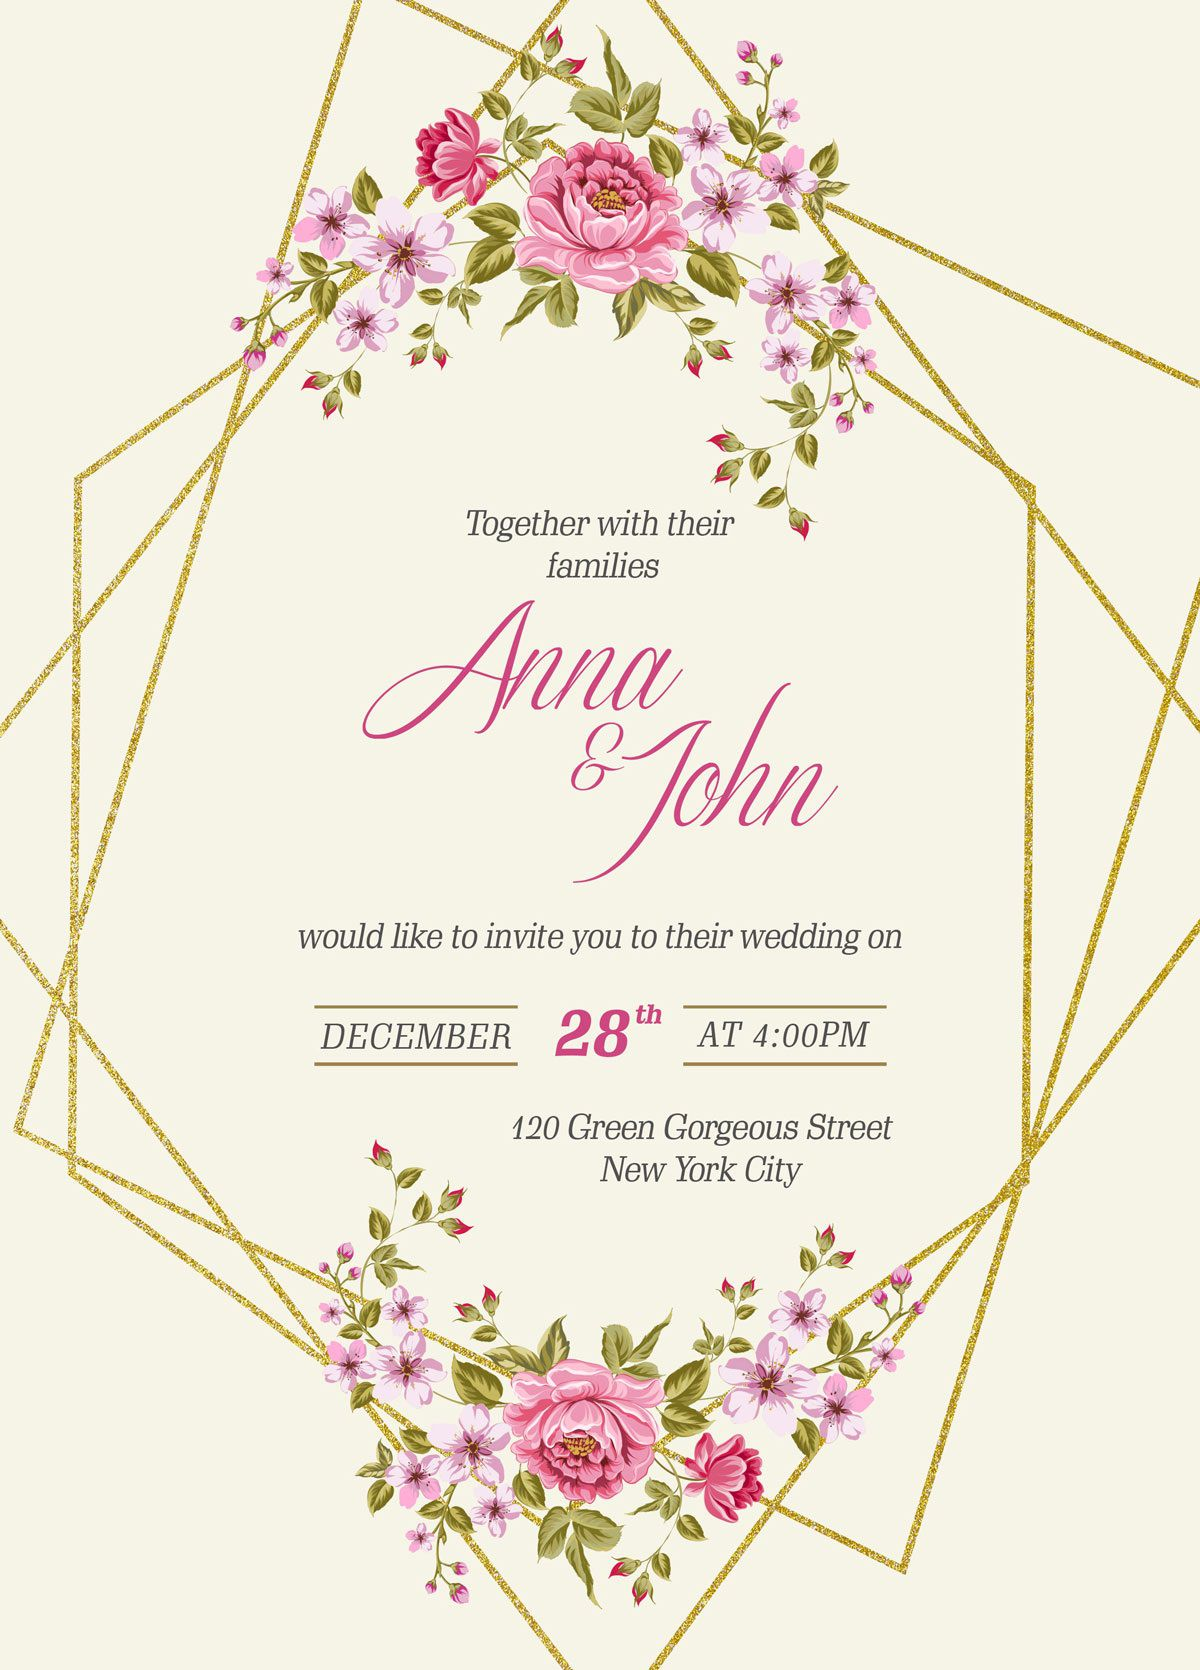 007 Outstanding Free Download Invitation Card Template Psd Image  Indian WeddingFull